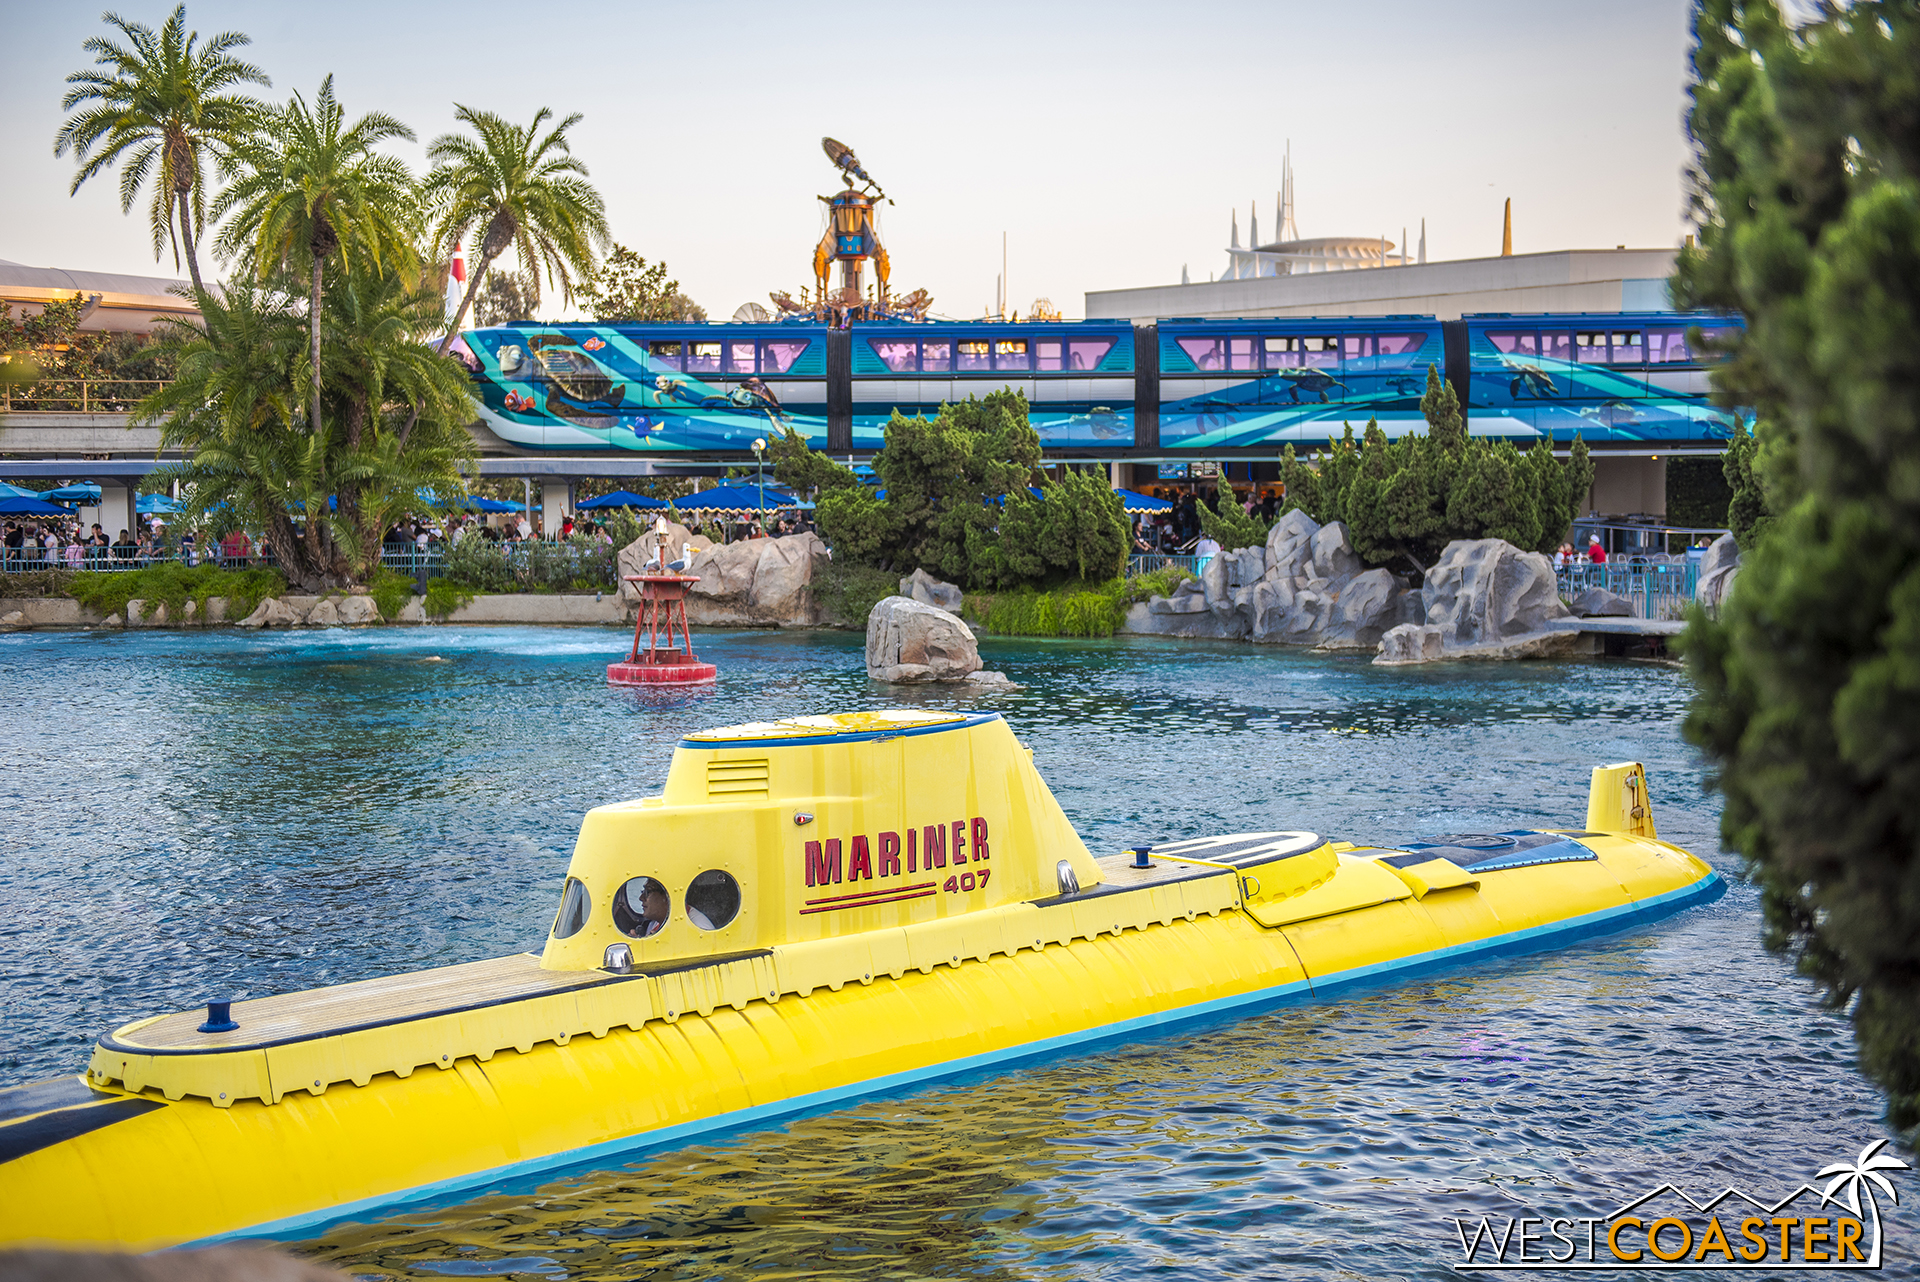 The monorail has gotten a new skin for Pixar Fest too.